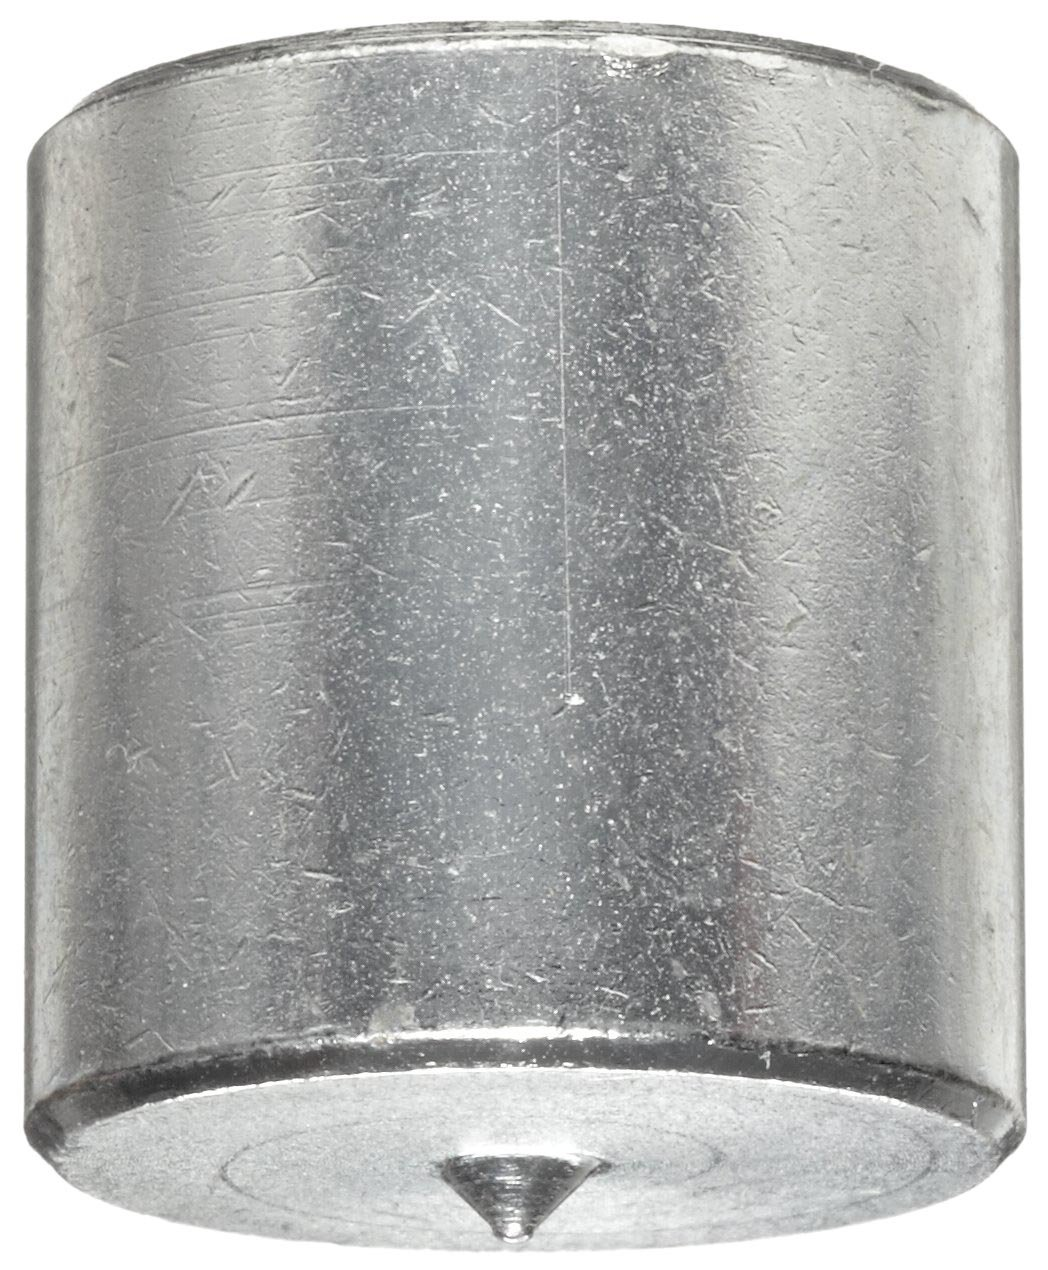 Posi Lock P10 Puller Tip Protector, For Use With 108, 208, 110, 210 Pullers